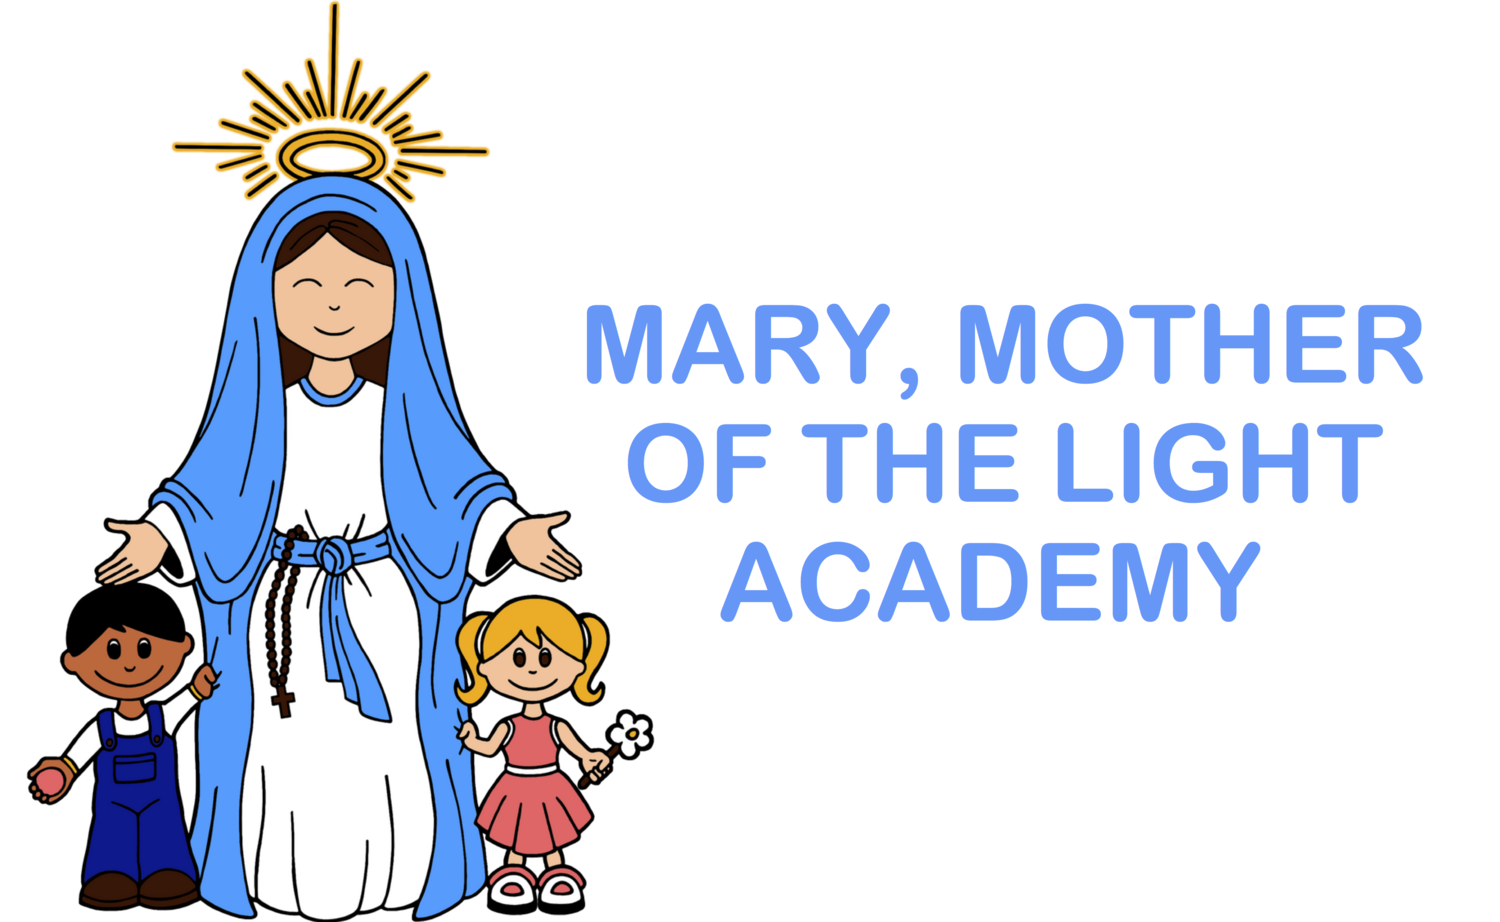 Mary, Mother of the Light Academy